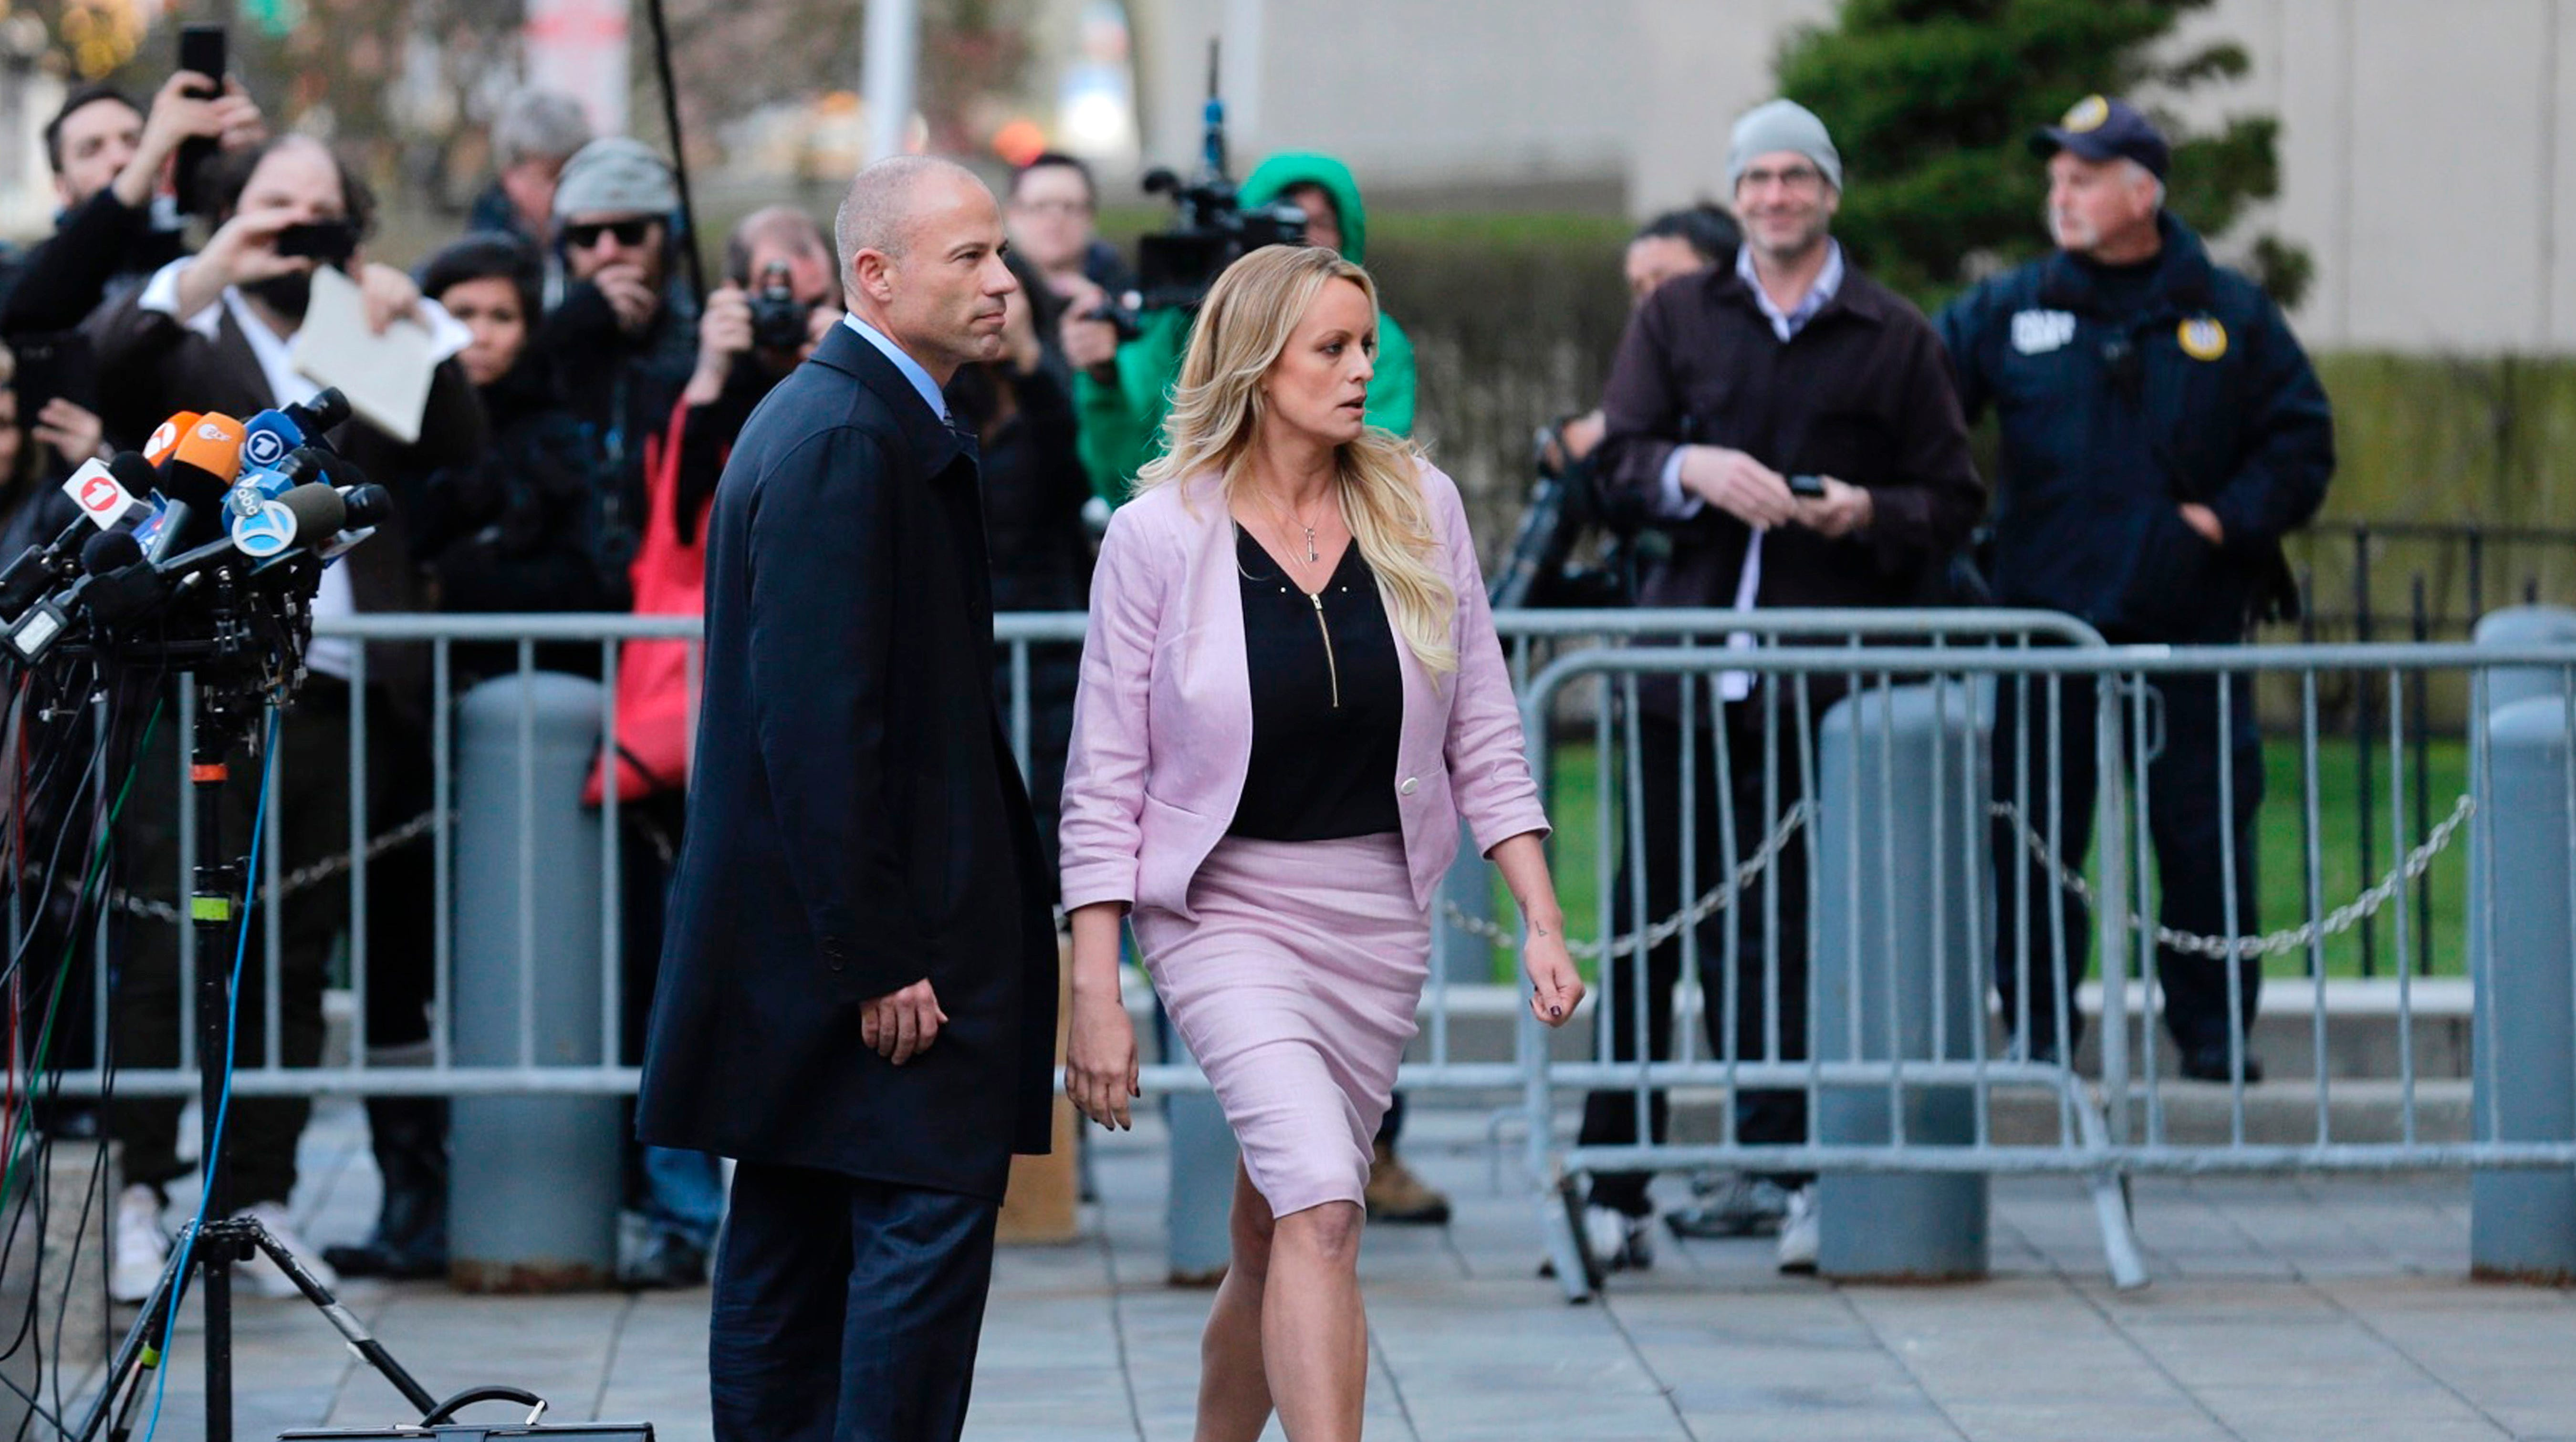 Judge appears likely to toss out Stormy Daniels' libel case against President Trump